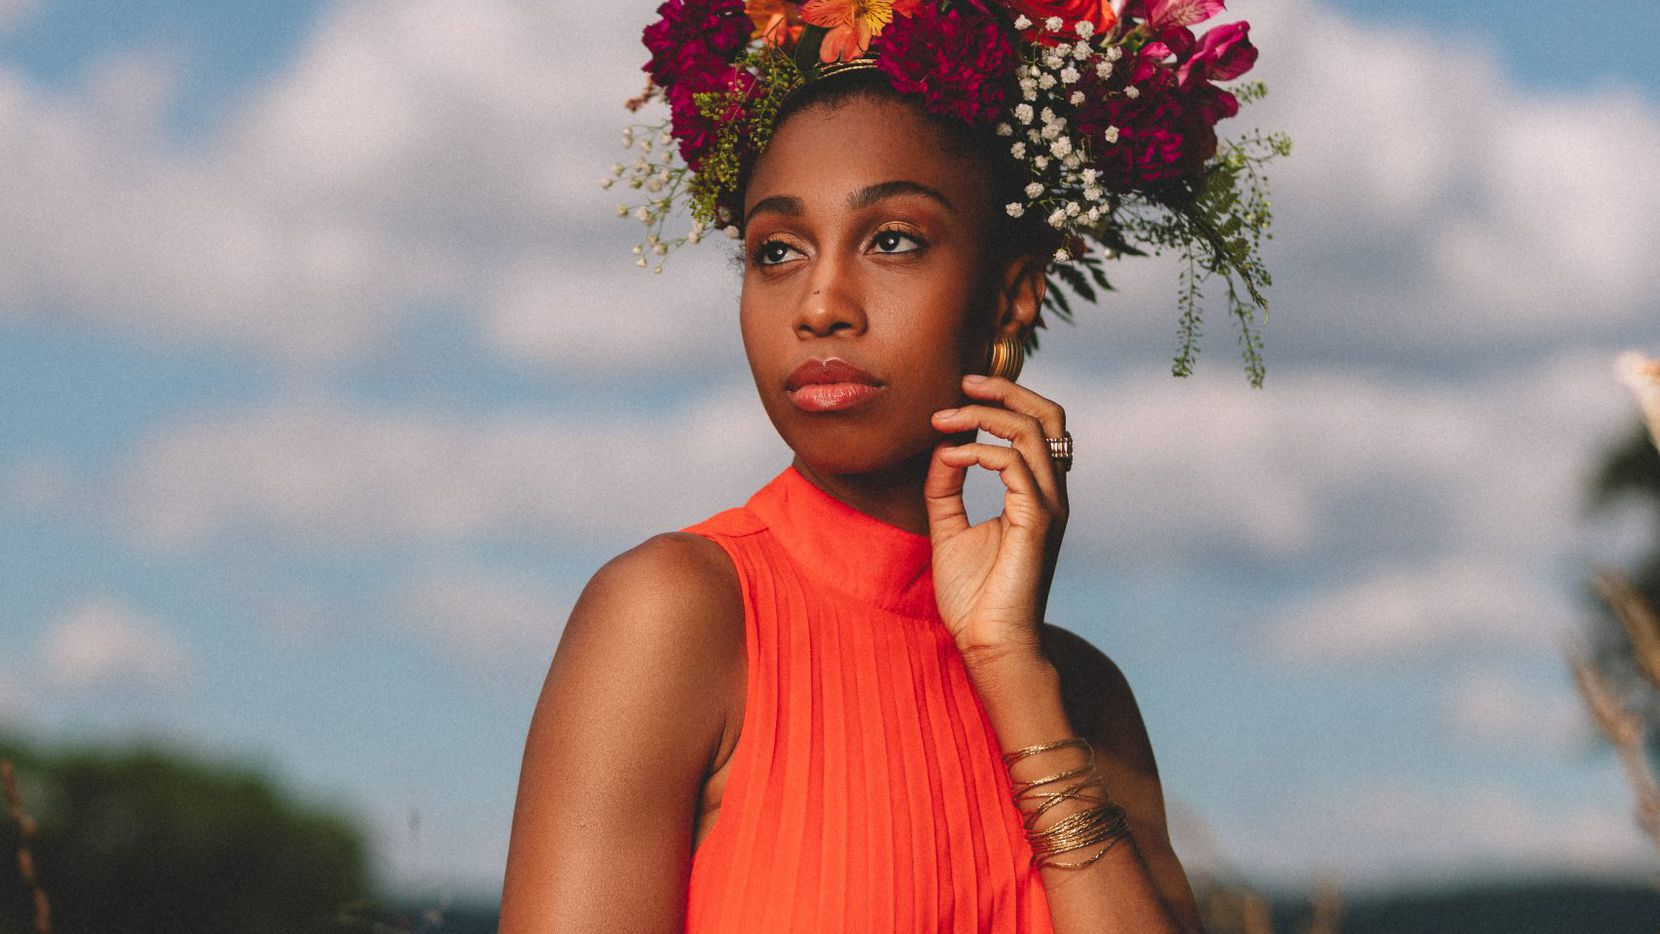 """Jazzmeia Horn lost her usual paycheck in 2020 when concerts shut down because of the pandemic. But rather than wallow, the Grammy-nominated vocalist started her own label, Empress Legacy Records, and financed and recorded her third album, """"Dear Love,"""" which is out now."""